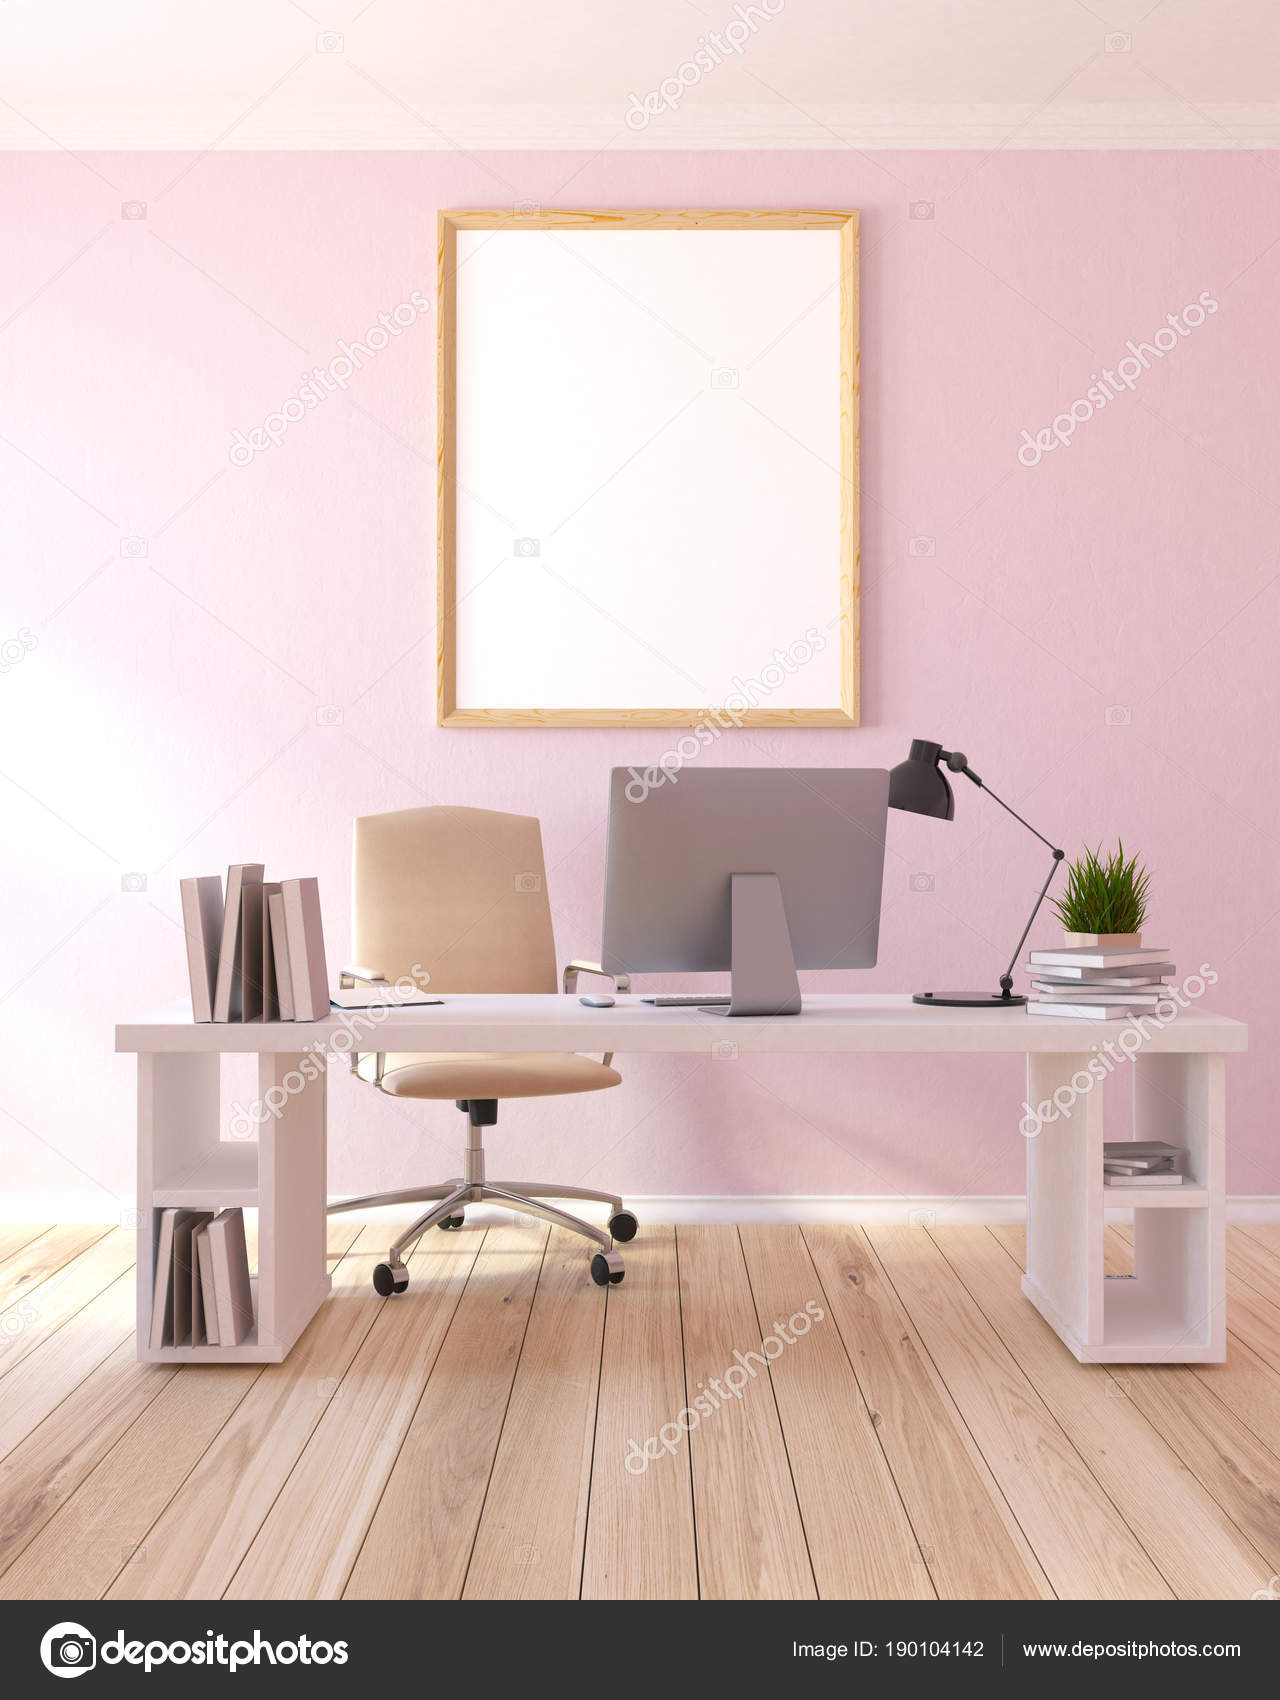 Home Office Arbeitsplatz Leichte Rosa Home Office Arbeitsplatz Poster Stockfoto